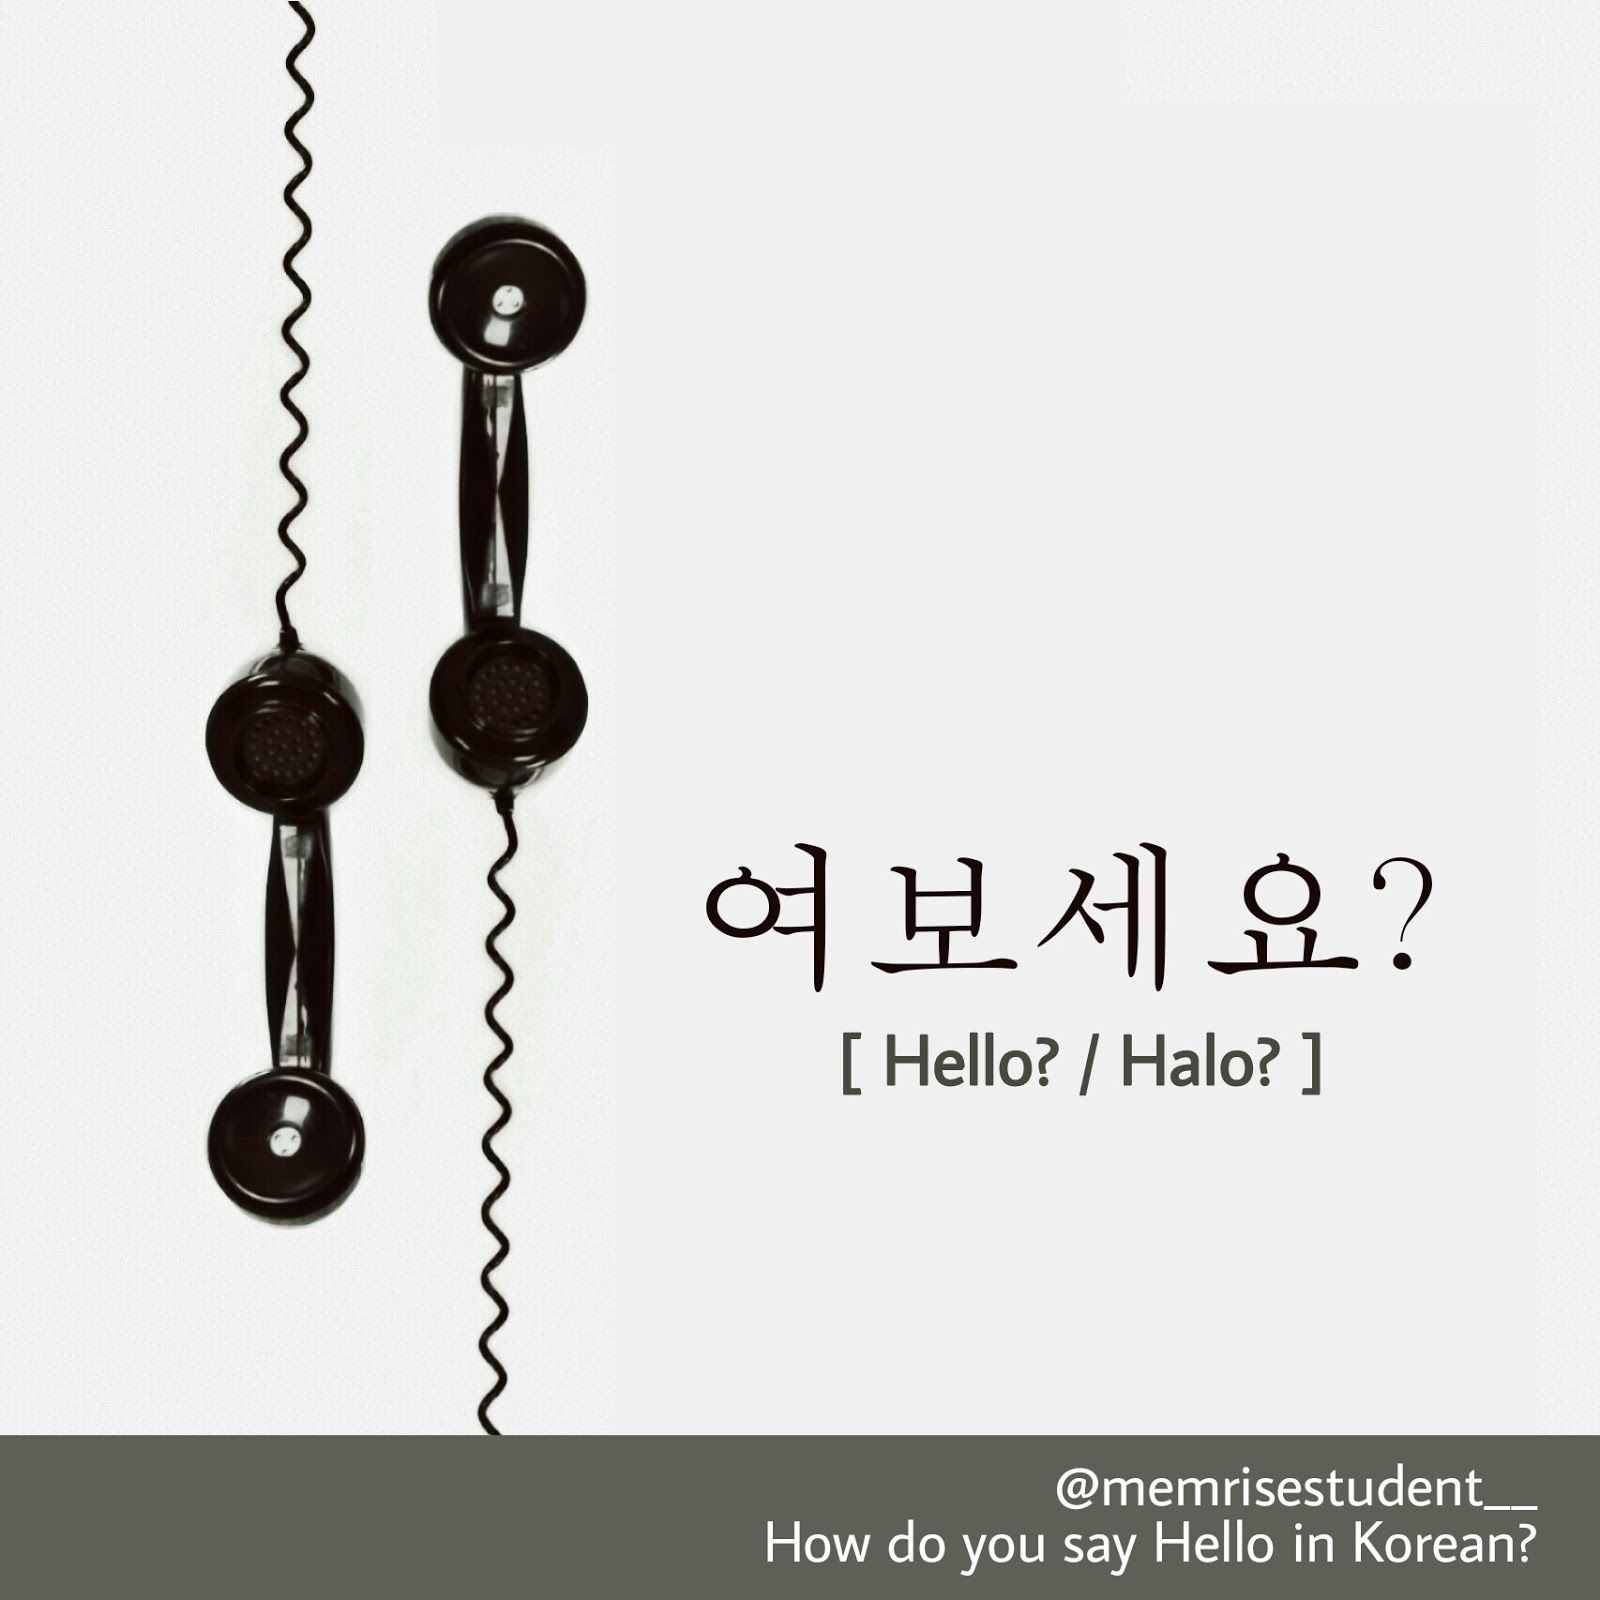 How to answer a phone call?